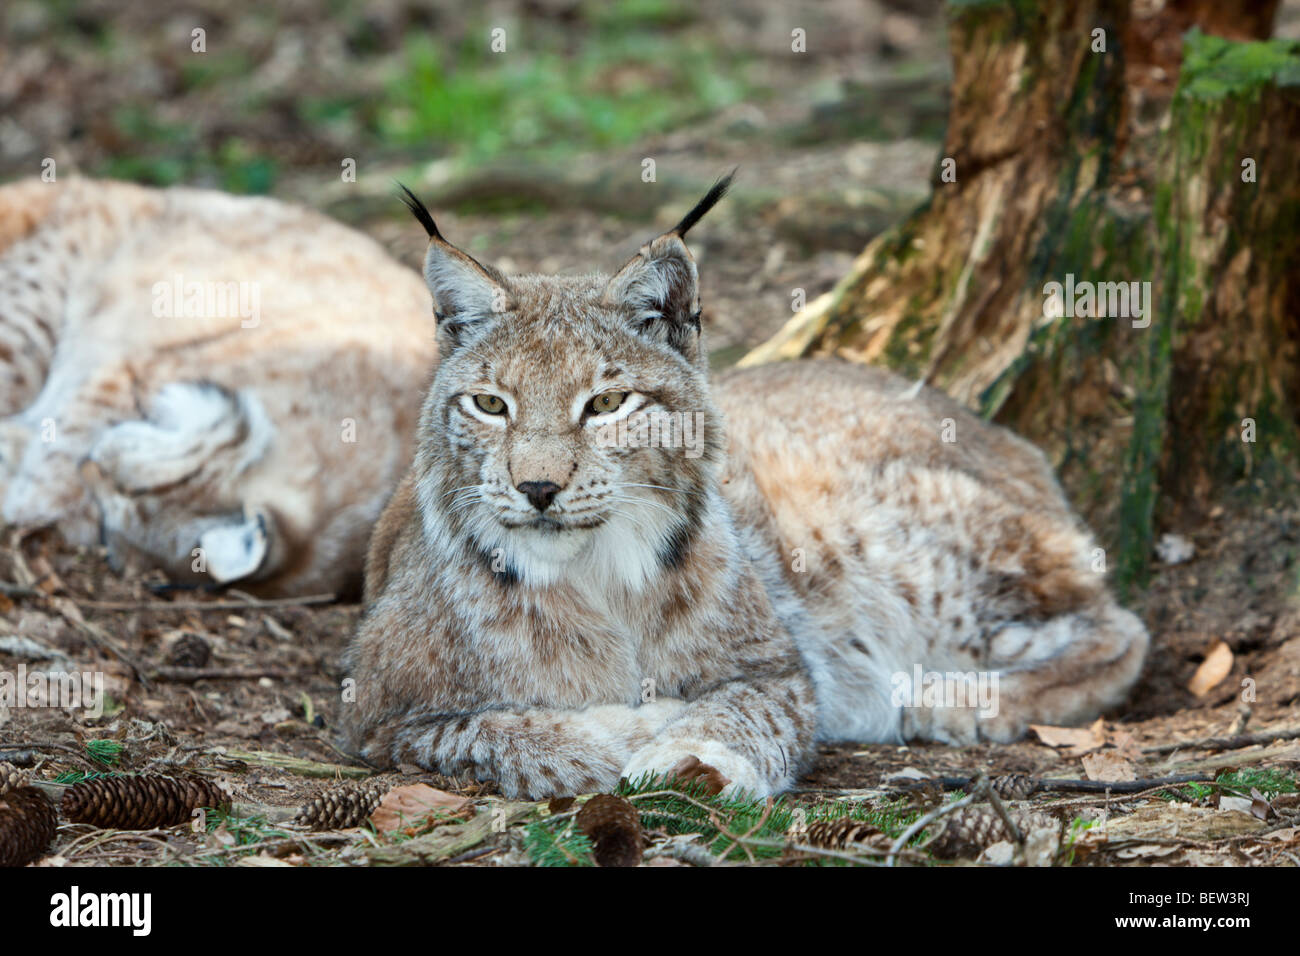 Eurasian Lynx, Lynx lynx, Bavarian Forest, Germany - Stock Image